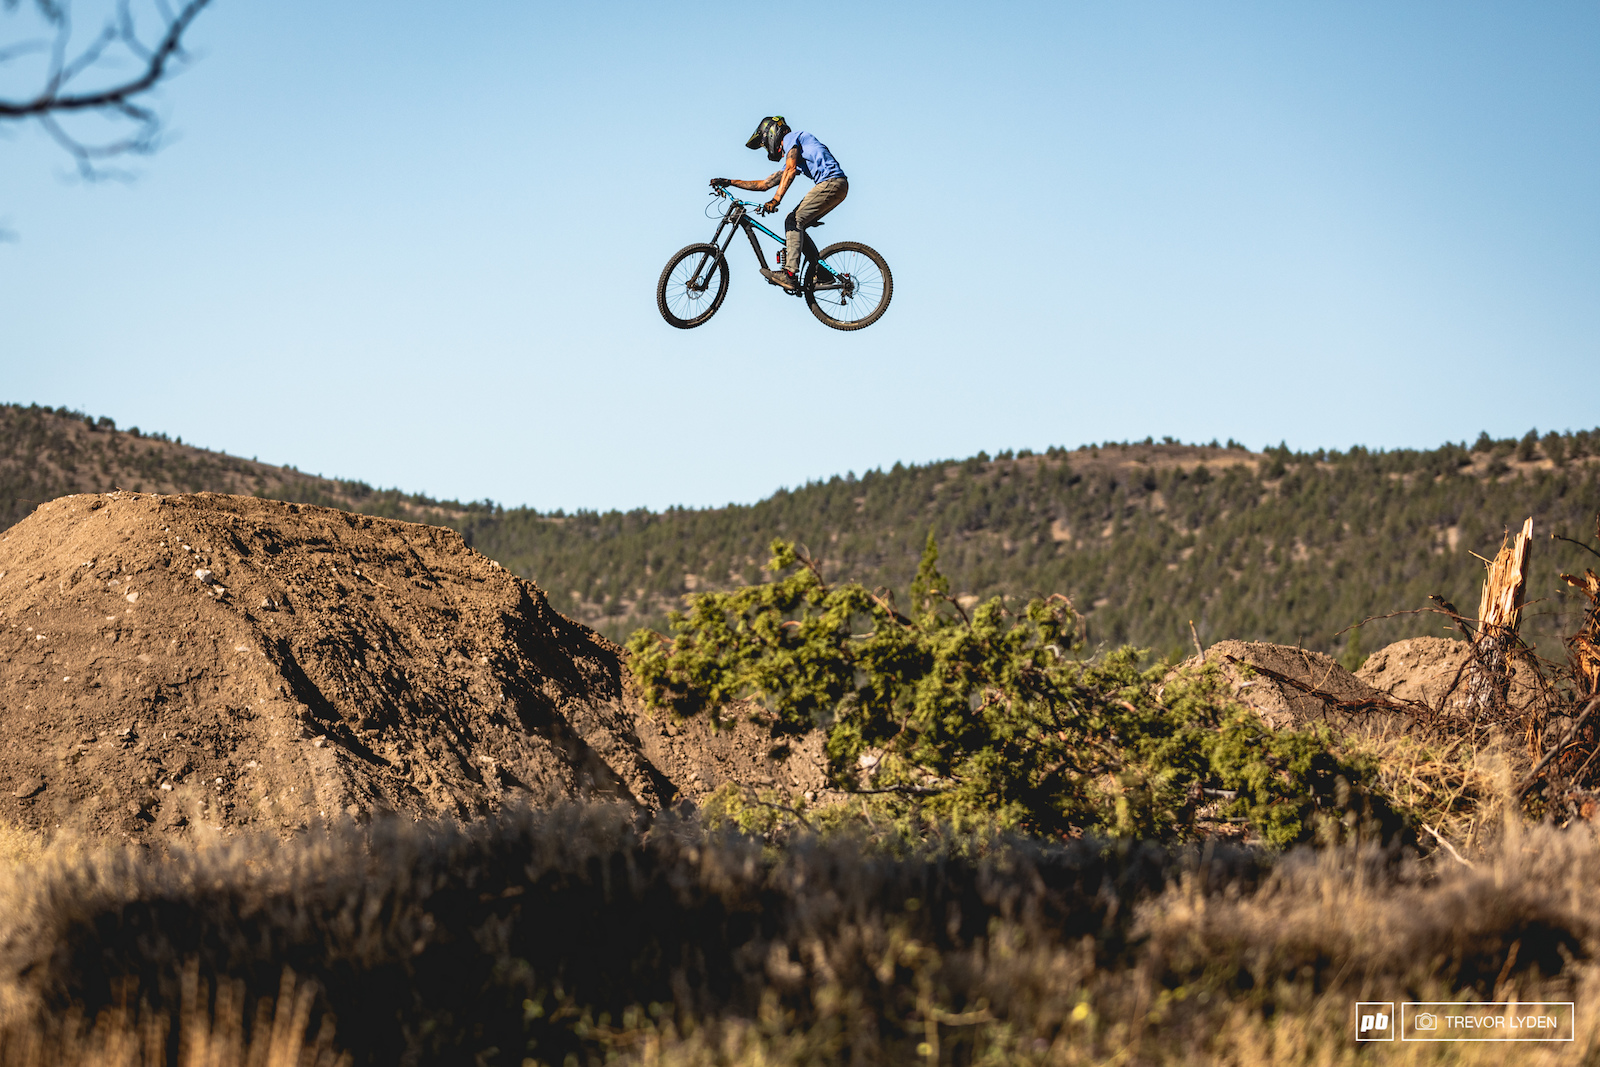 Freeride pioneer Randy Spangler showing the young guns that he can still ride.